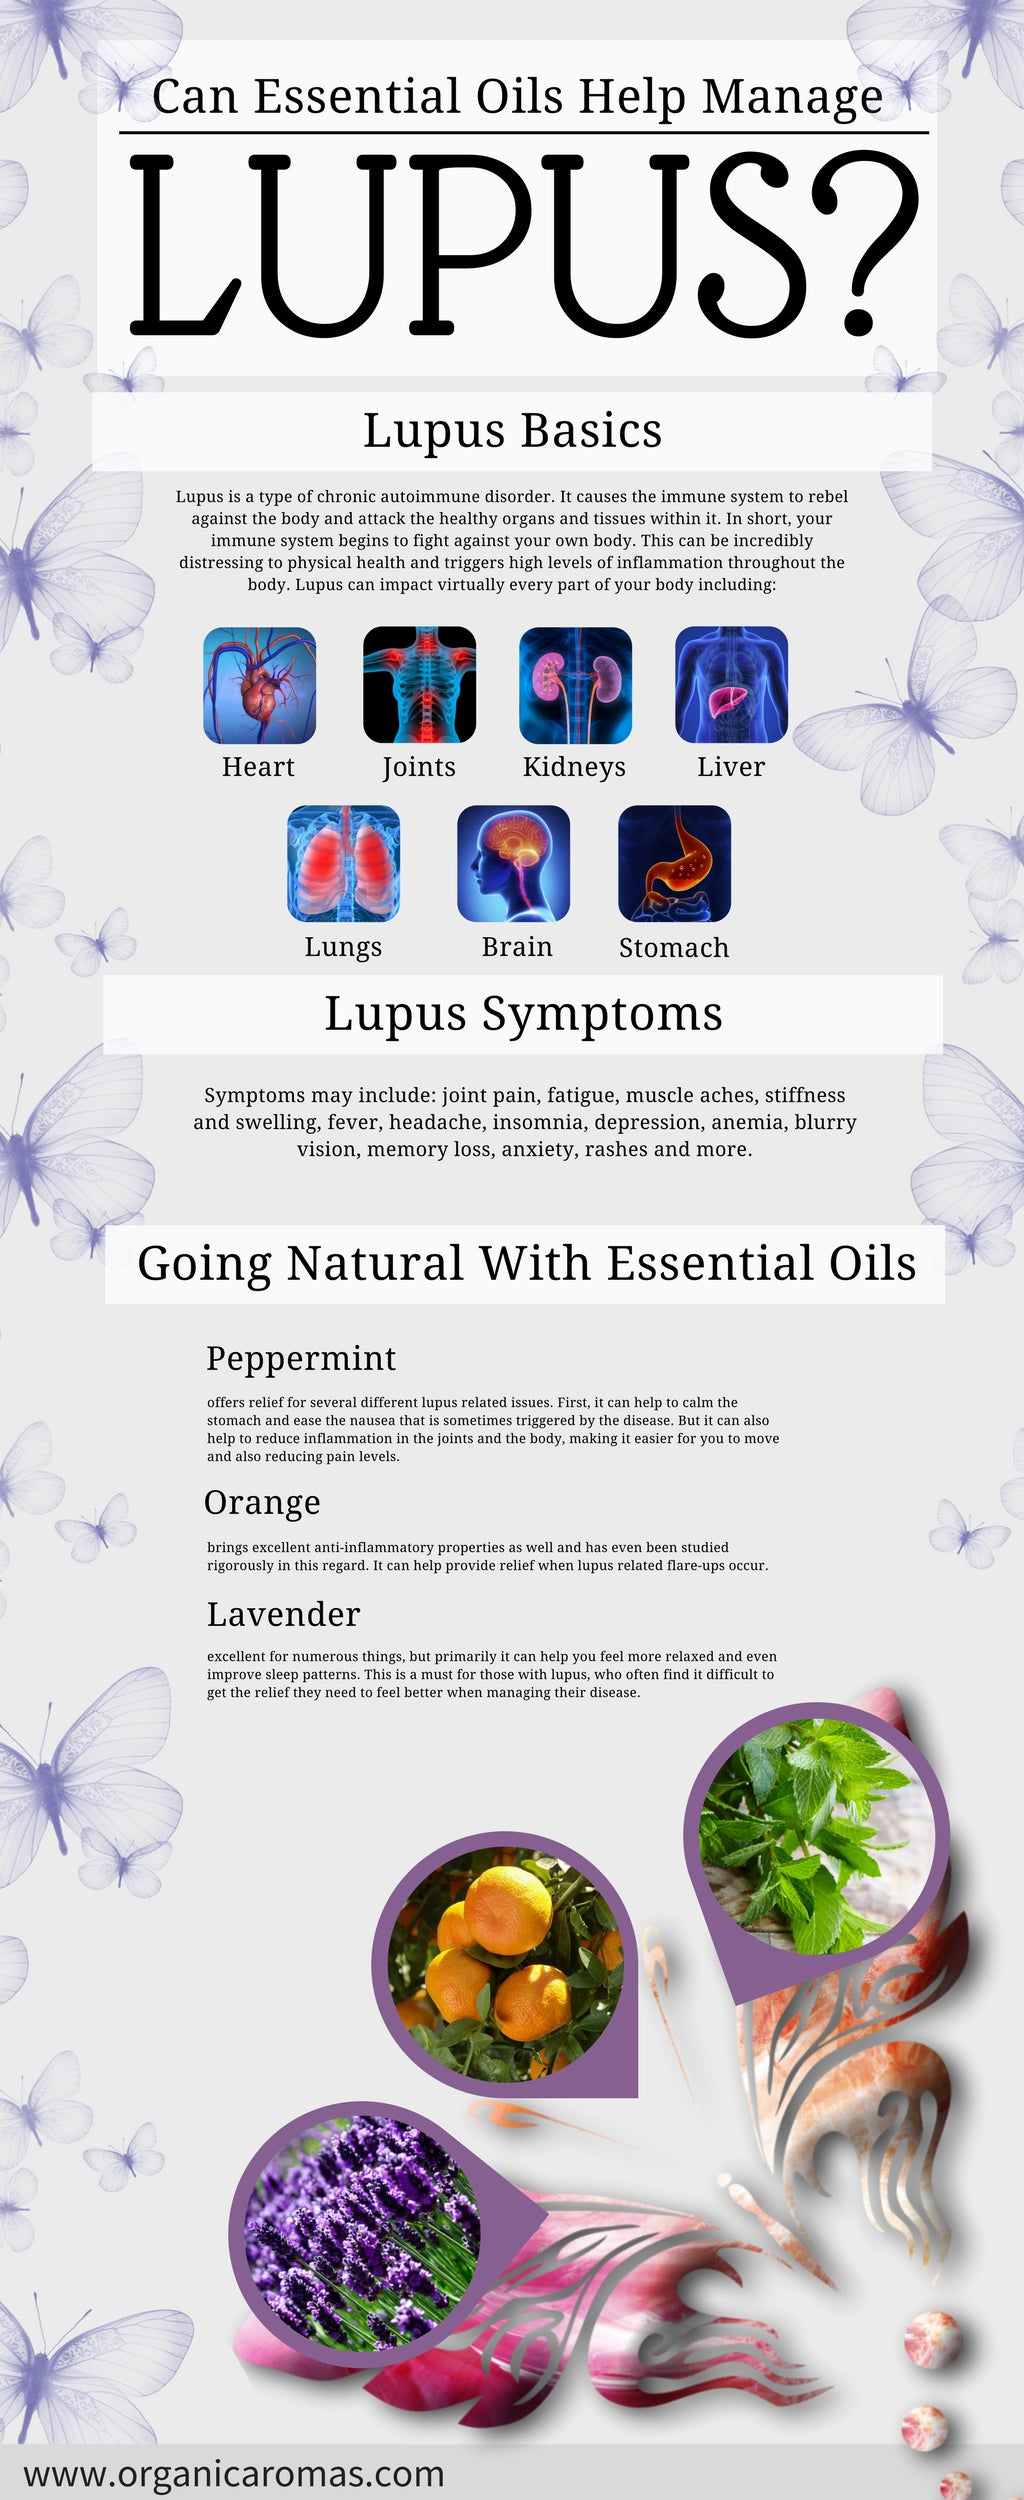 can essential oils help manage lupus? - organic aromas